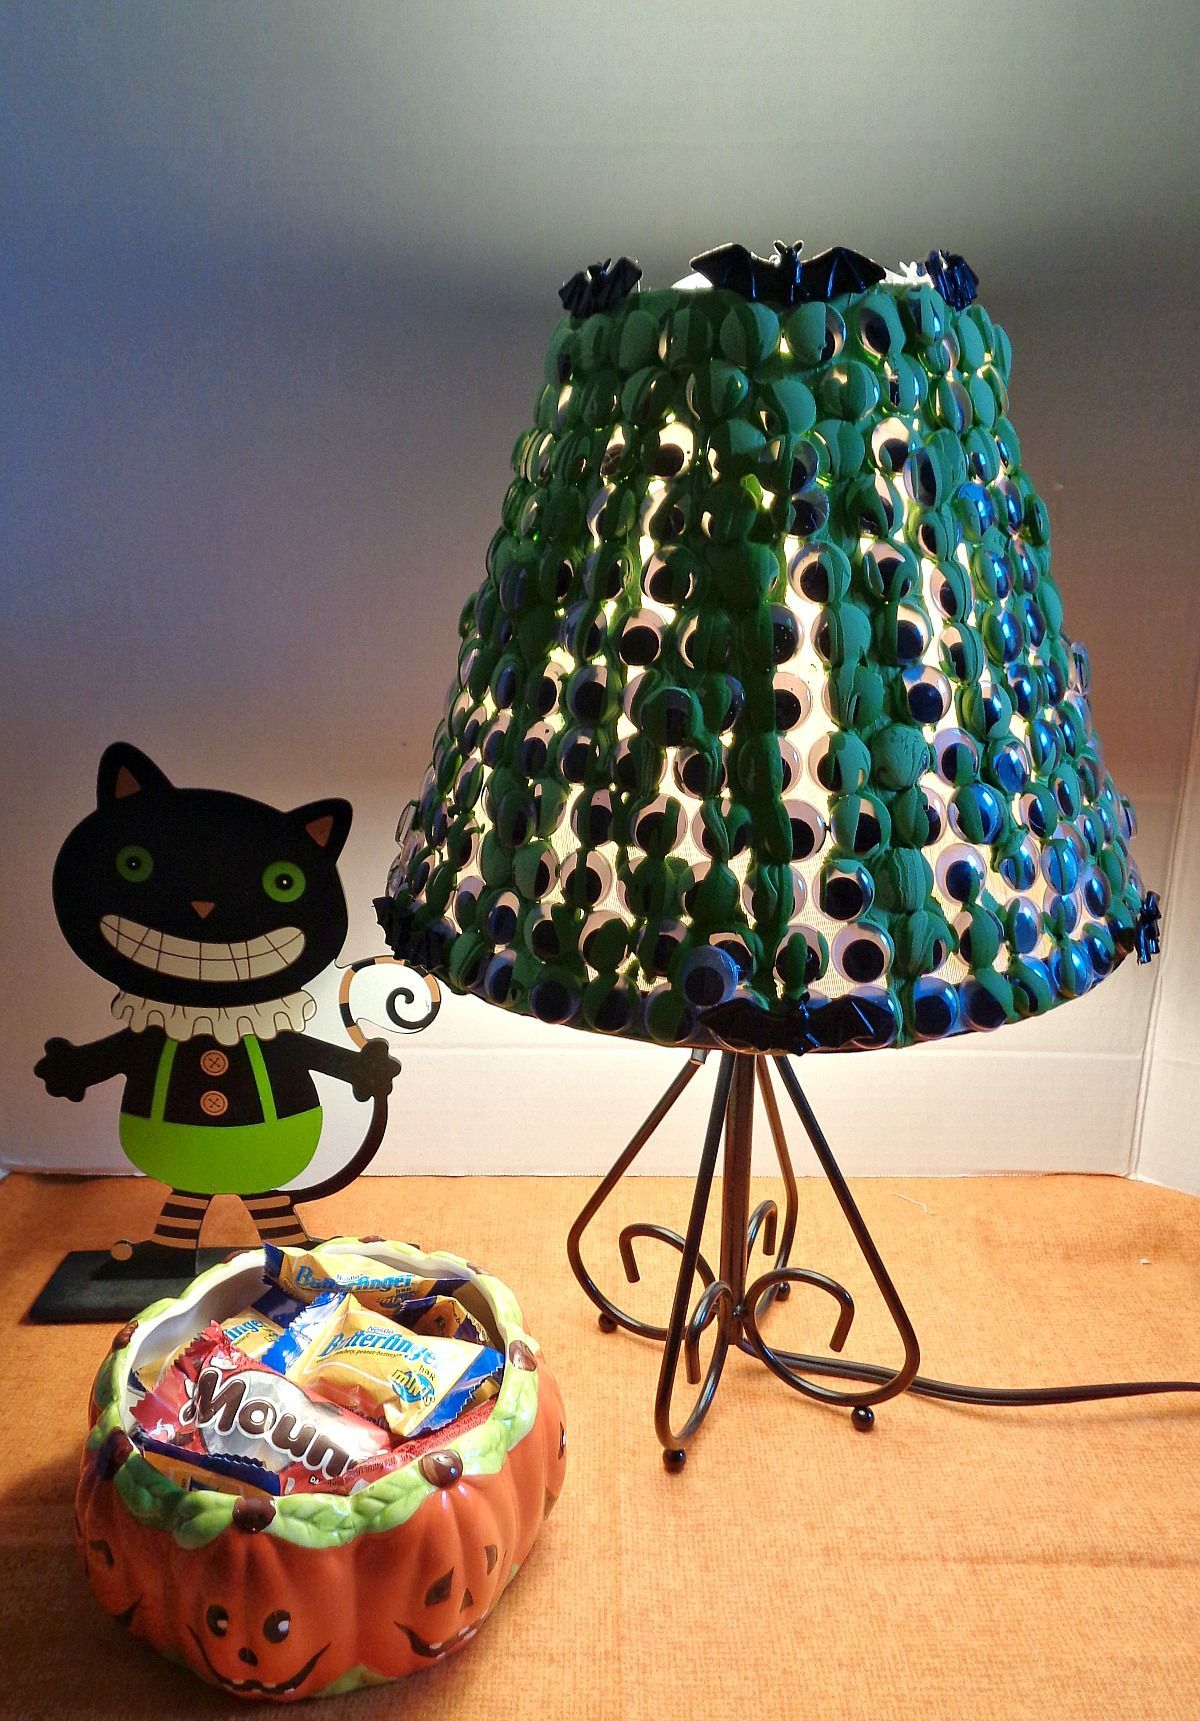 DIY Lampshade Ideas - The Best And The Brightest